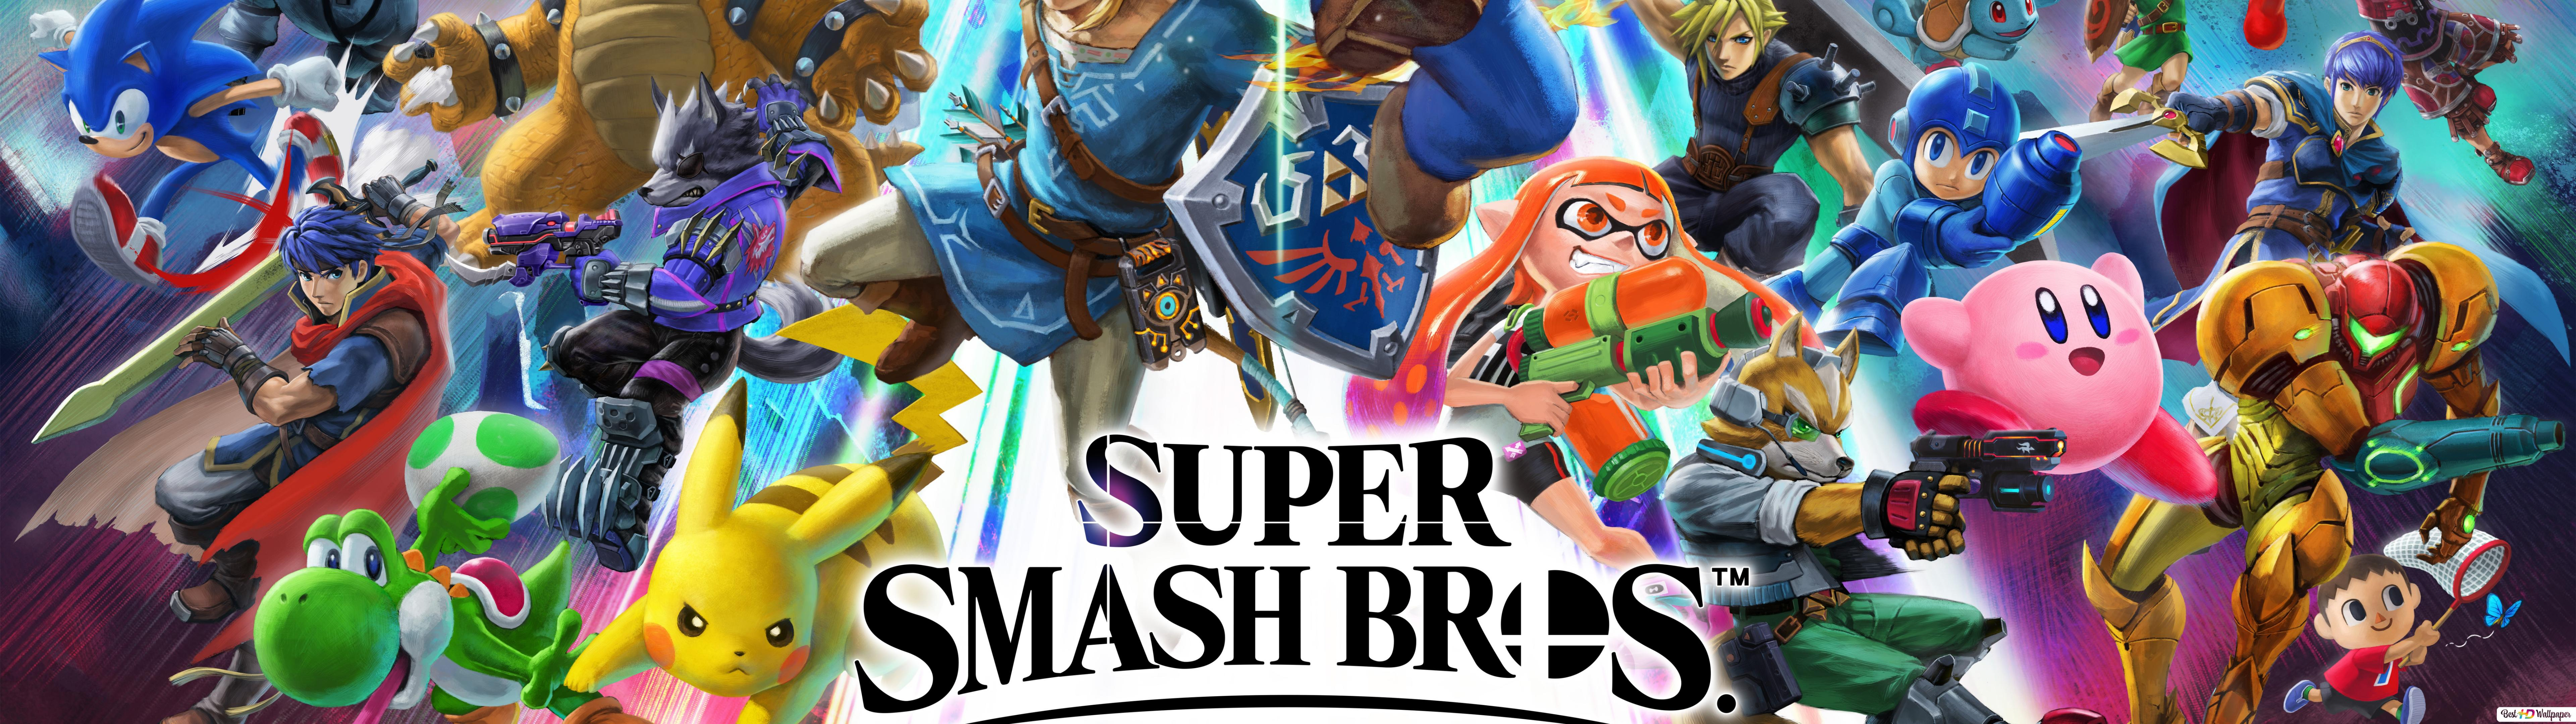 Super Smash Bros Ultimate Hd Wallpaper Download